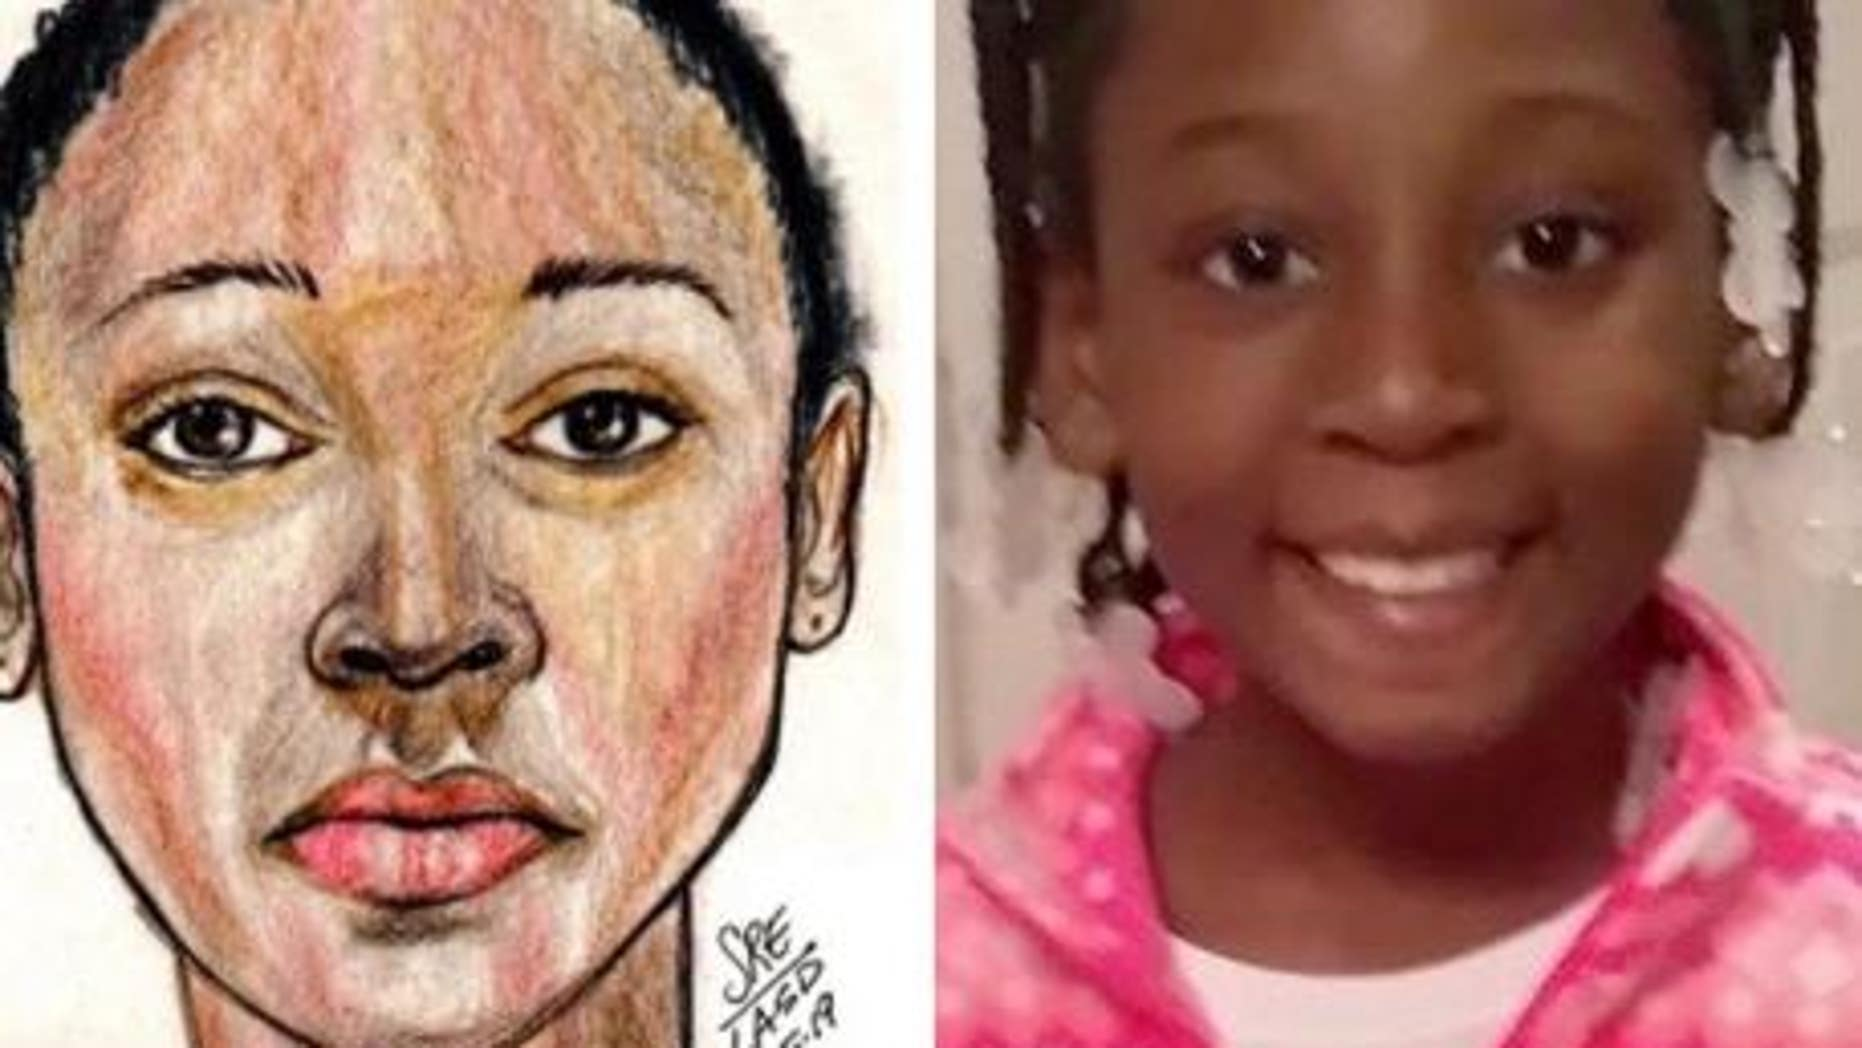 9-year-old girl found dead in duffel bag identified